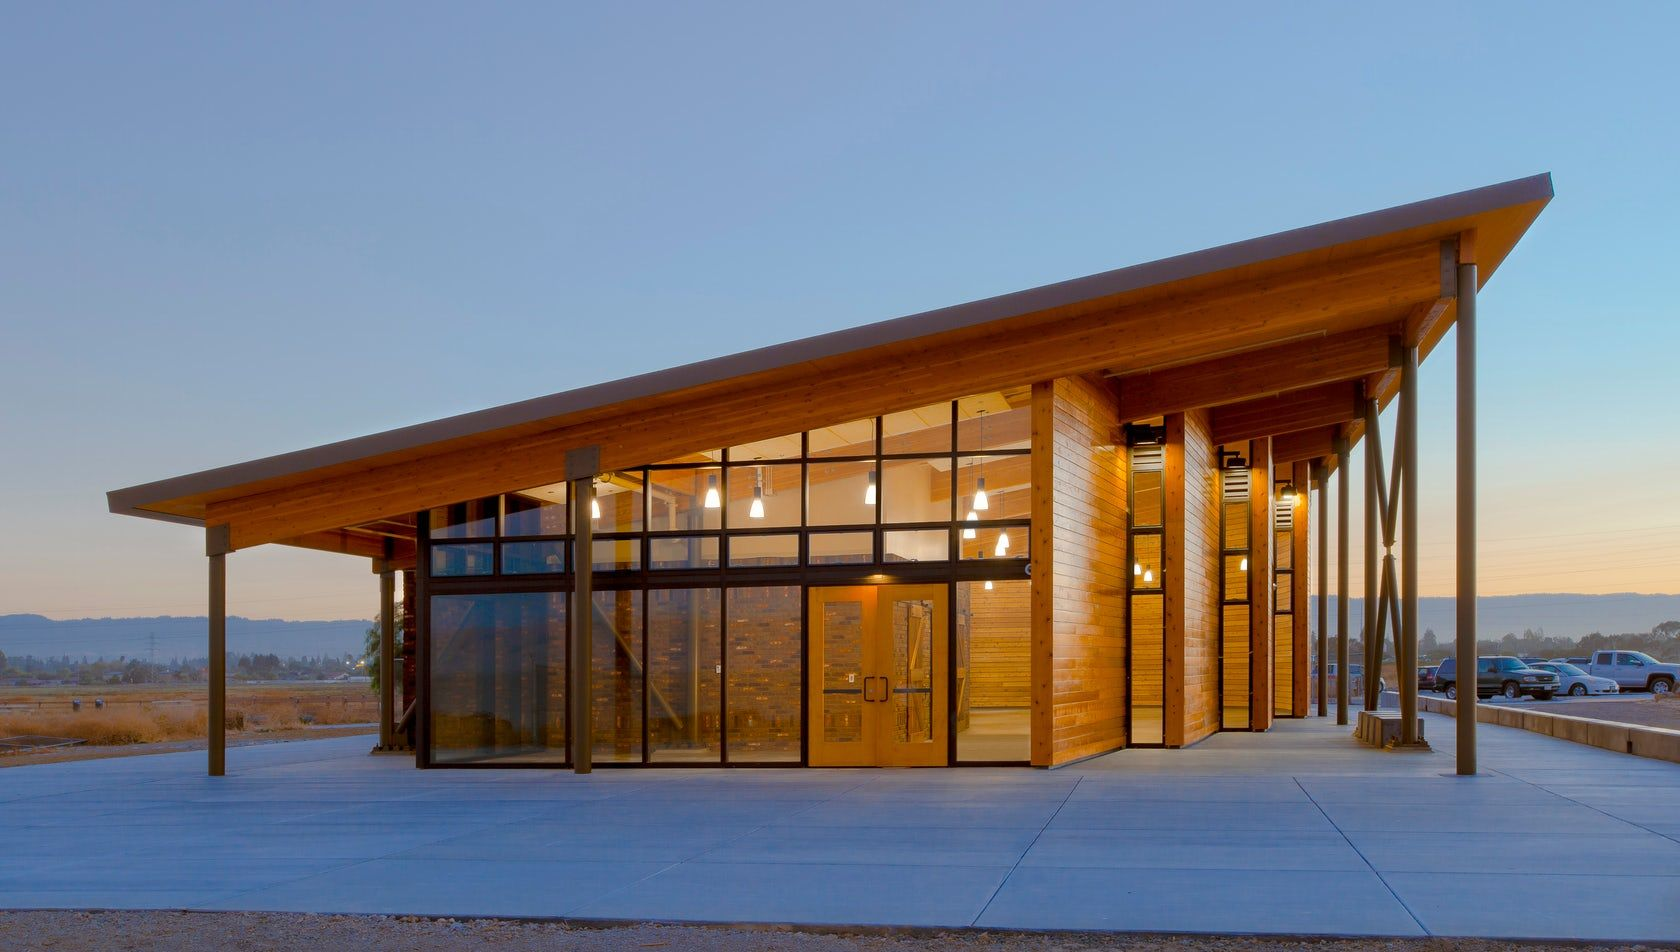 Cooley Landing Education Center California S First Clt Roof System Panels And Furniture Asia Vloeren